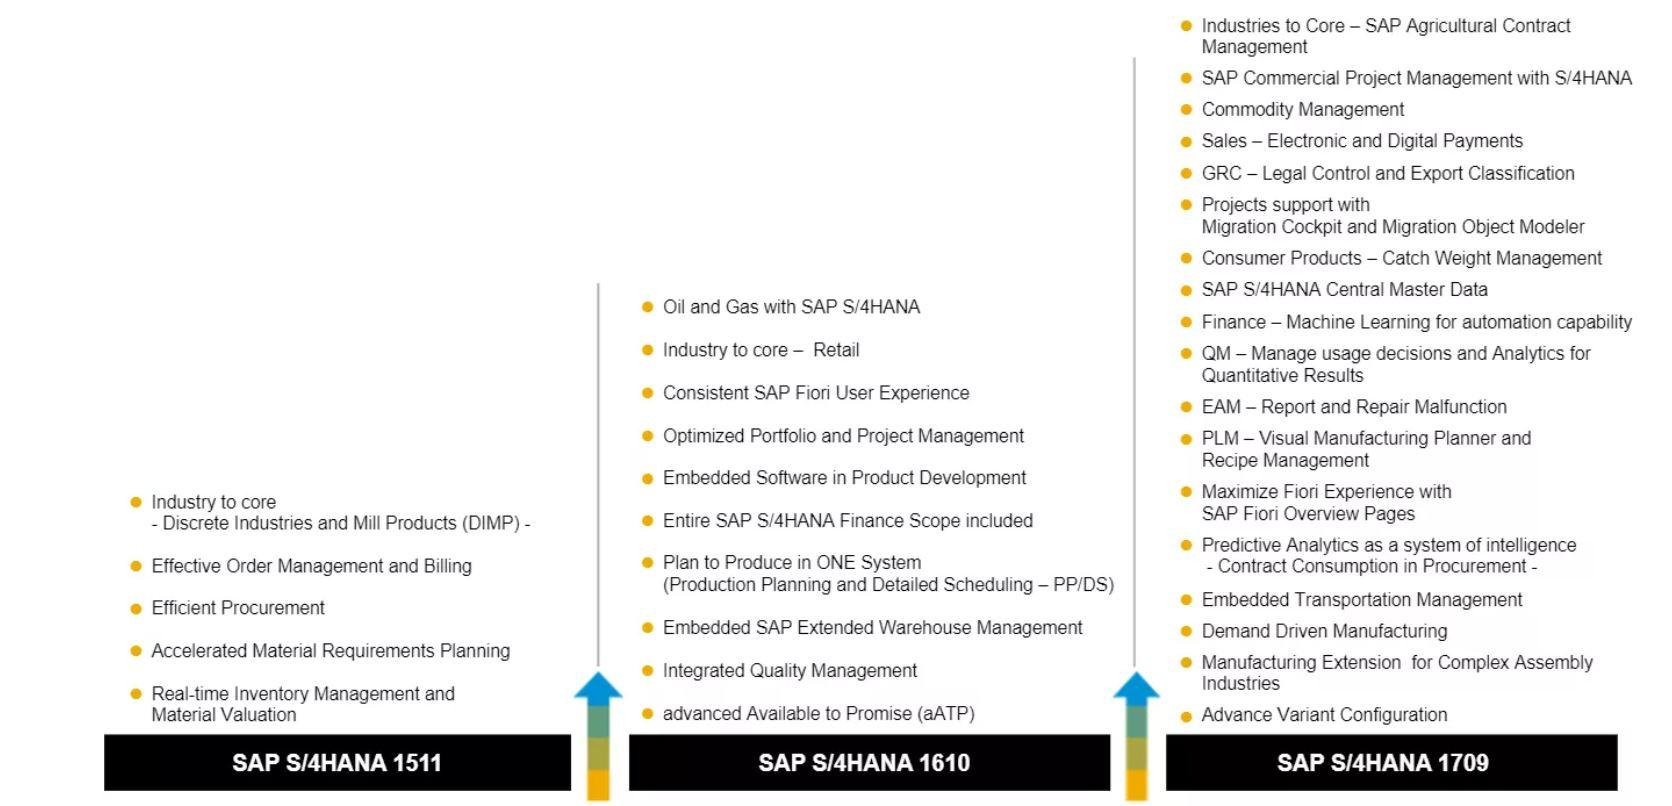 S4HANA KeyInnovations